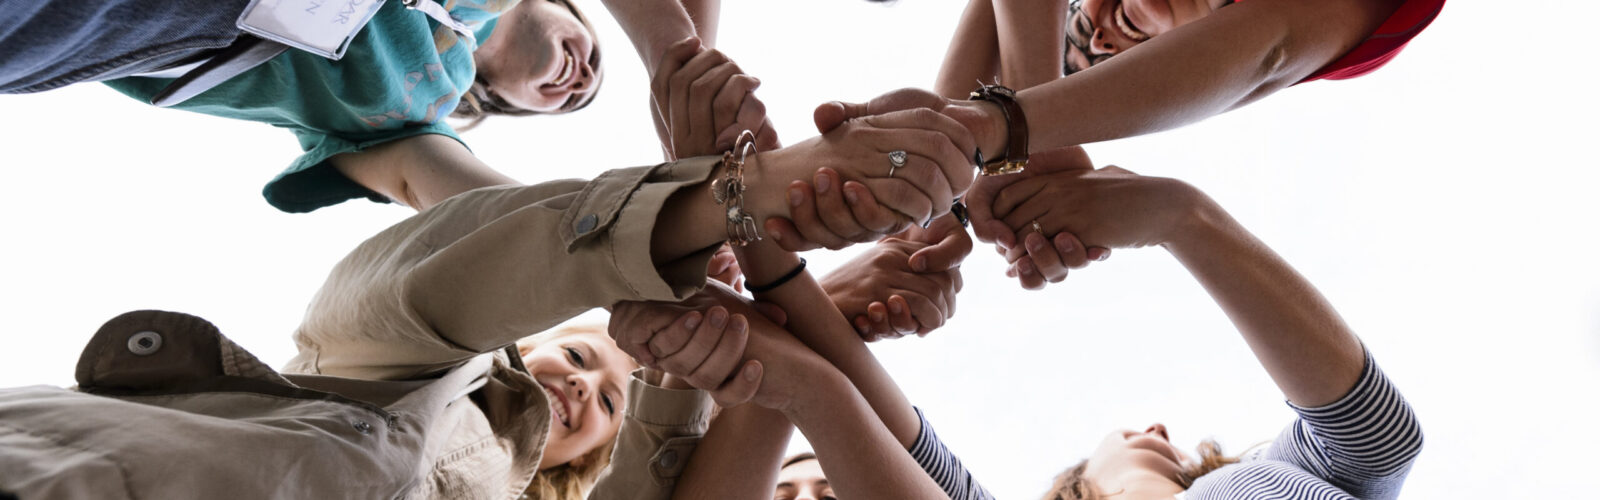 Close-up of huddled people with interlocking hands